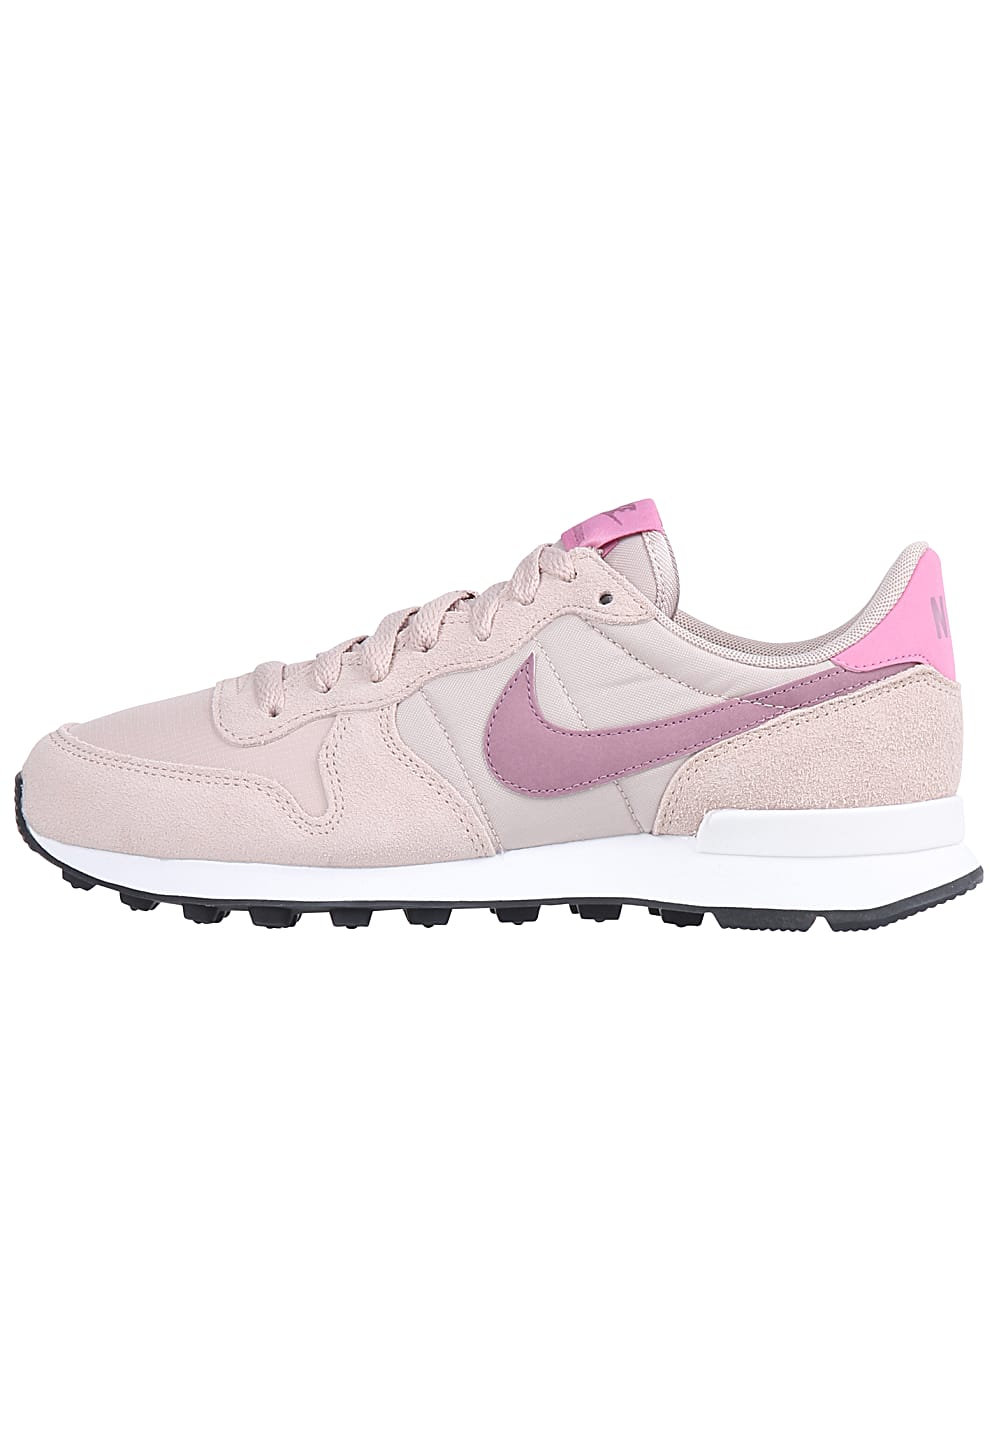 evidencia web Sobriqueta  NIKE SPORTSWEAR Internationalist - Sneaker für Damen - Pink - Planet Sports